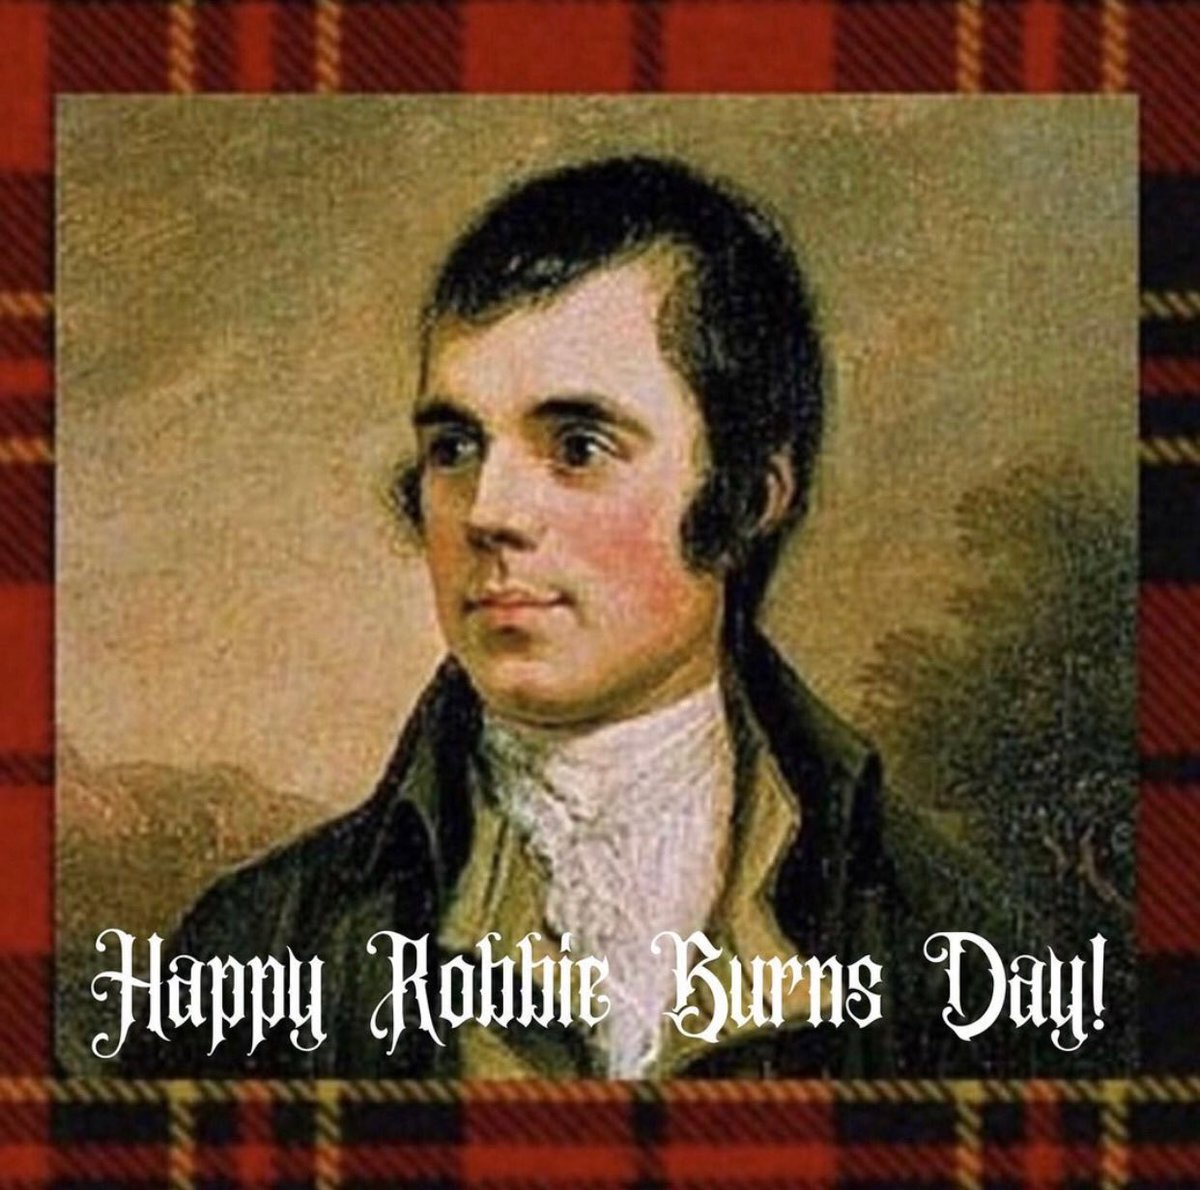 """Sláinte Mhath!"" ROBERT BURNS (25 January 1759 – 21 July 1796) This Scottish gal is puttin' on her tartan & wishing all ye fellow Scots a Happy Robbie Burns Day! Good Health! #robbieburnsday #haggis #scotchegg #auldlangsyne #Scotland #robertburns #happyrobbieburnsday"